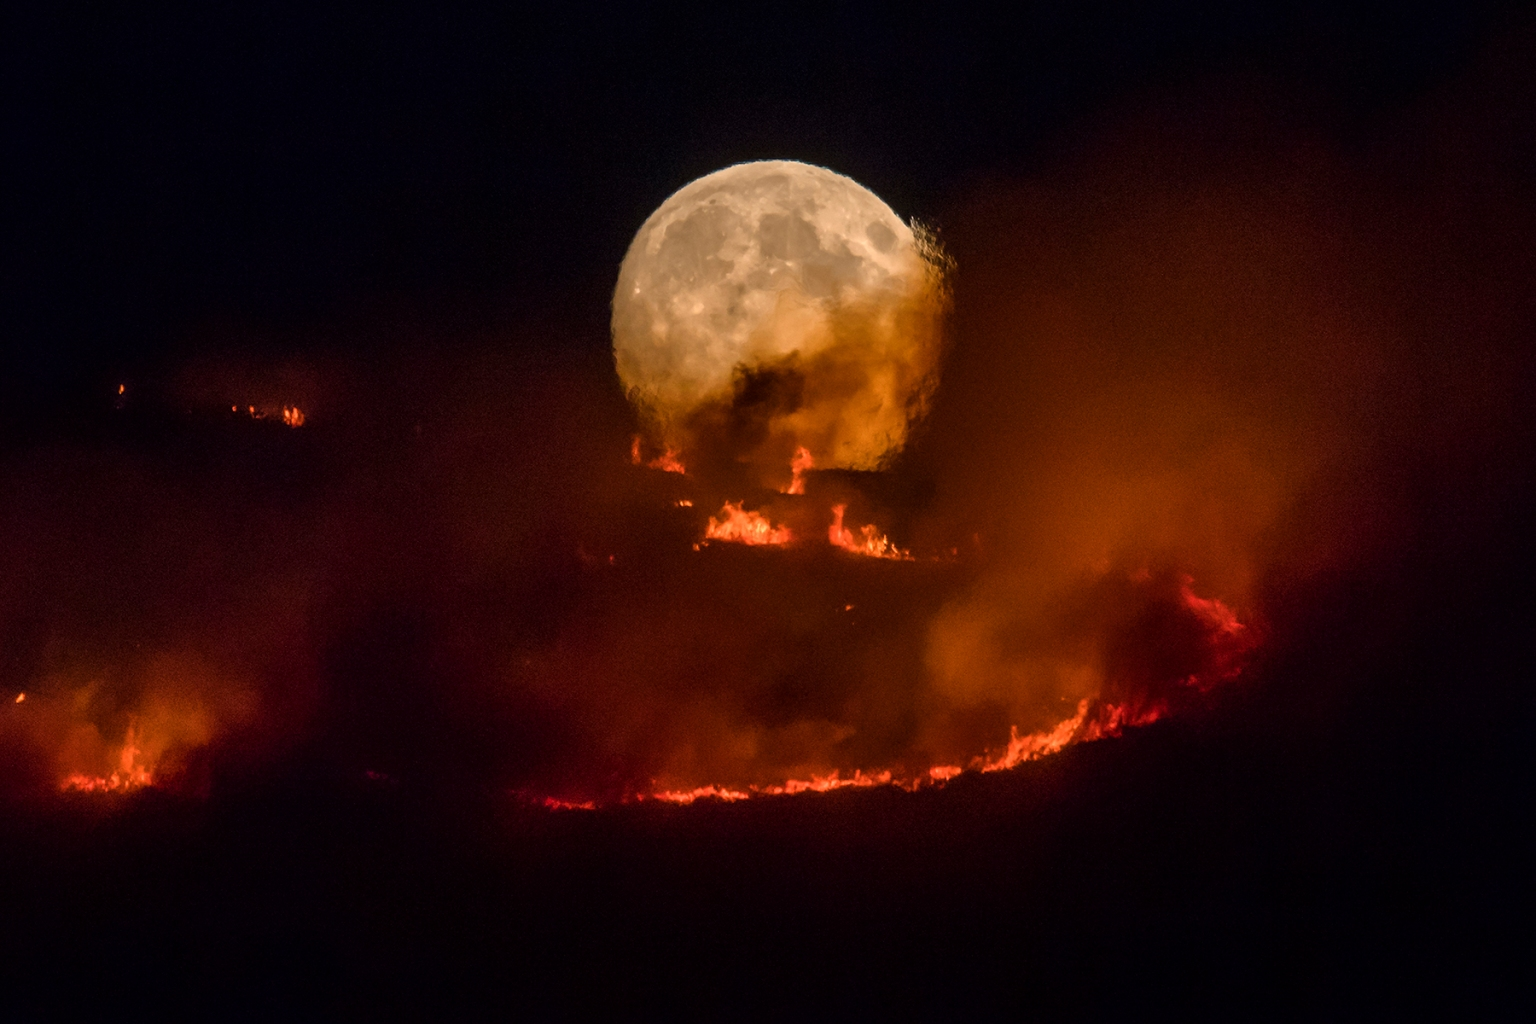 The full moon rises behind burning moorland as a large wildfire sweeps across the moors between Dovestones and Buckton Vale in Stalybridge, England, on June 26. ANTHONY DEVLIN/GETTY IMAGES